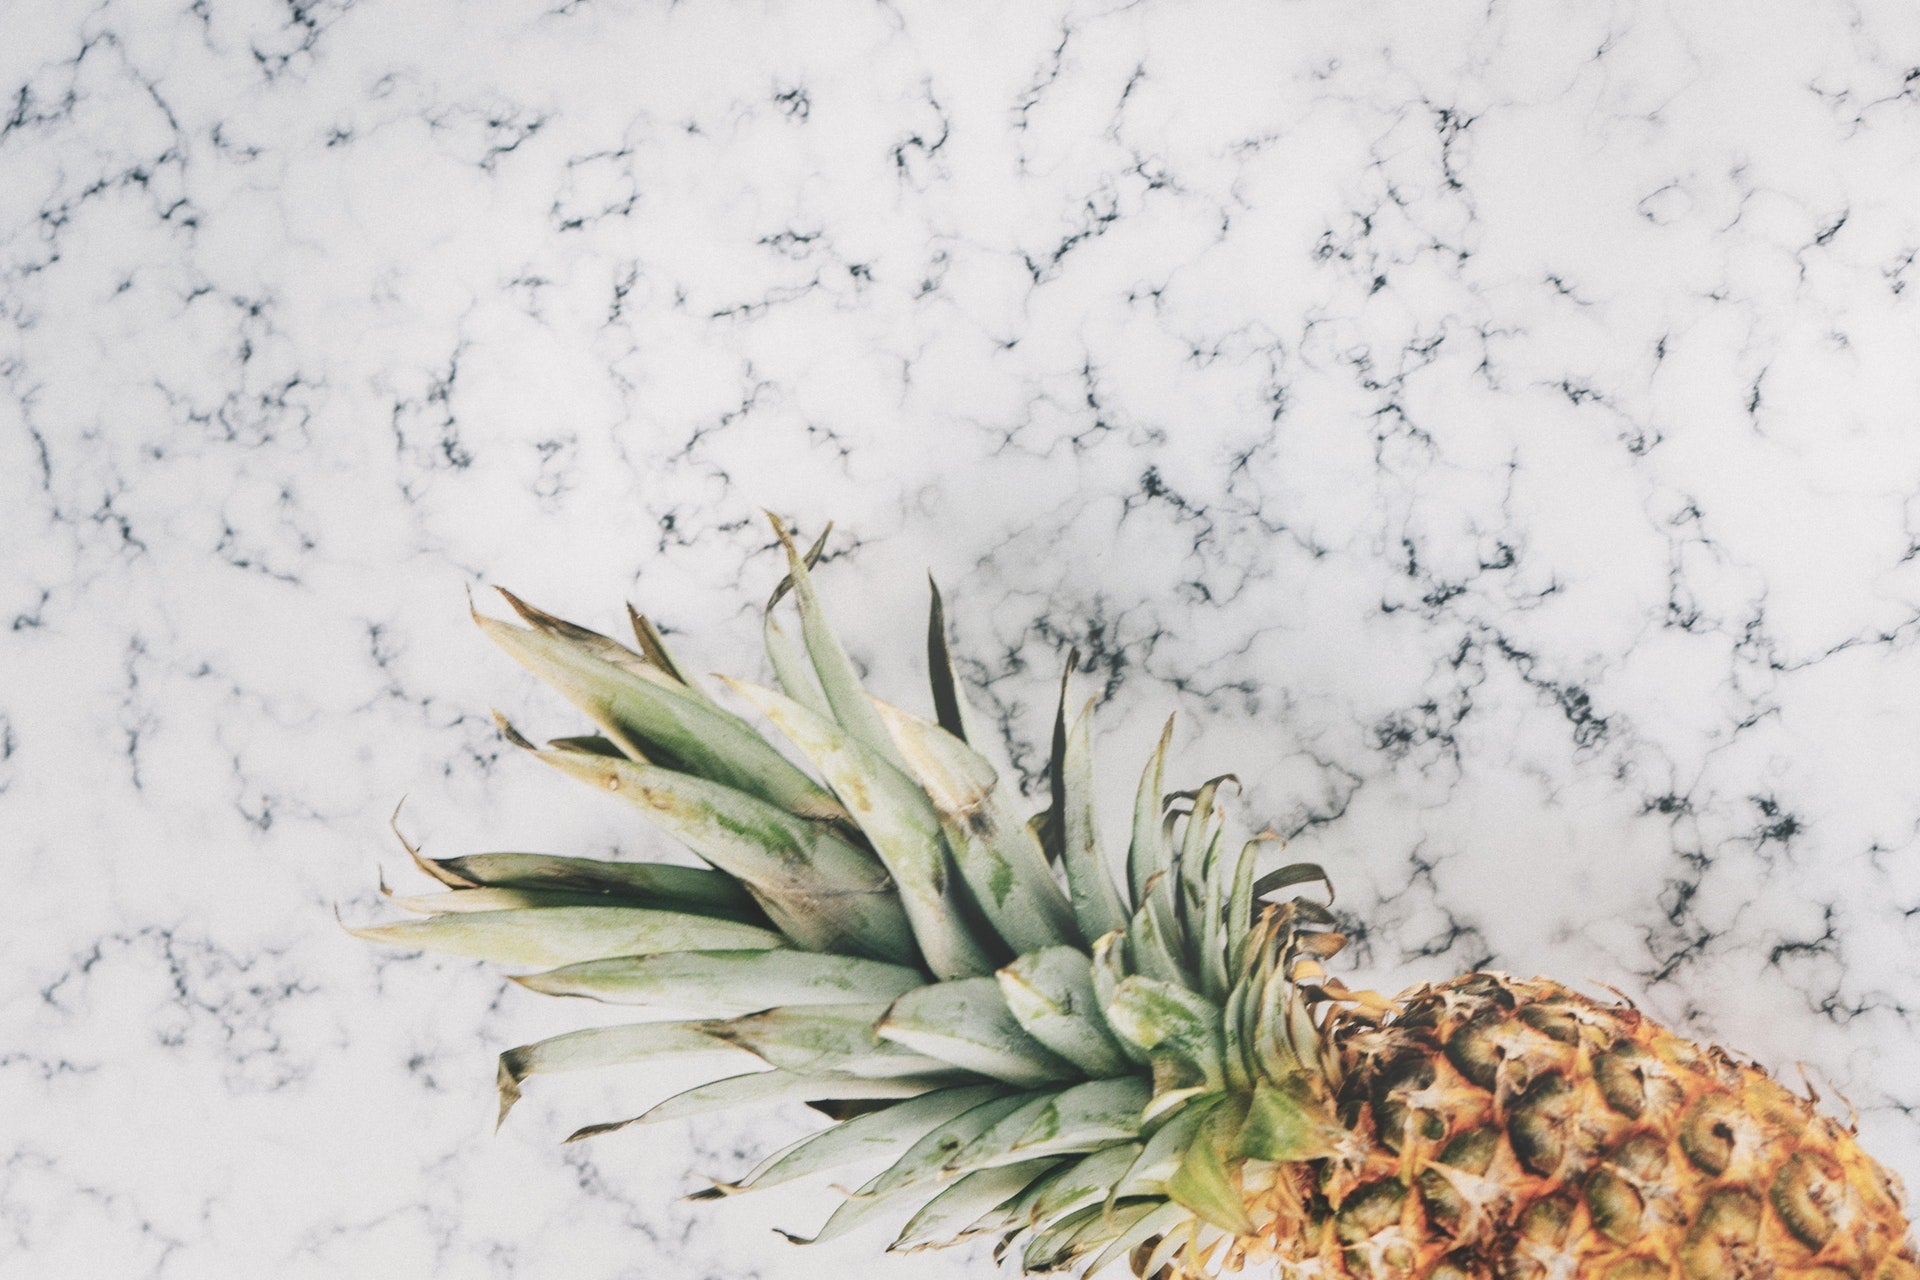 pineapple on marble counter background flat lay eveandelle